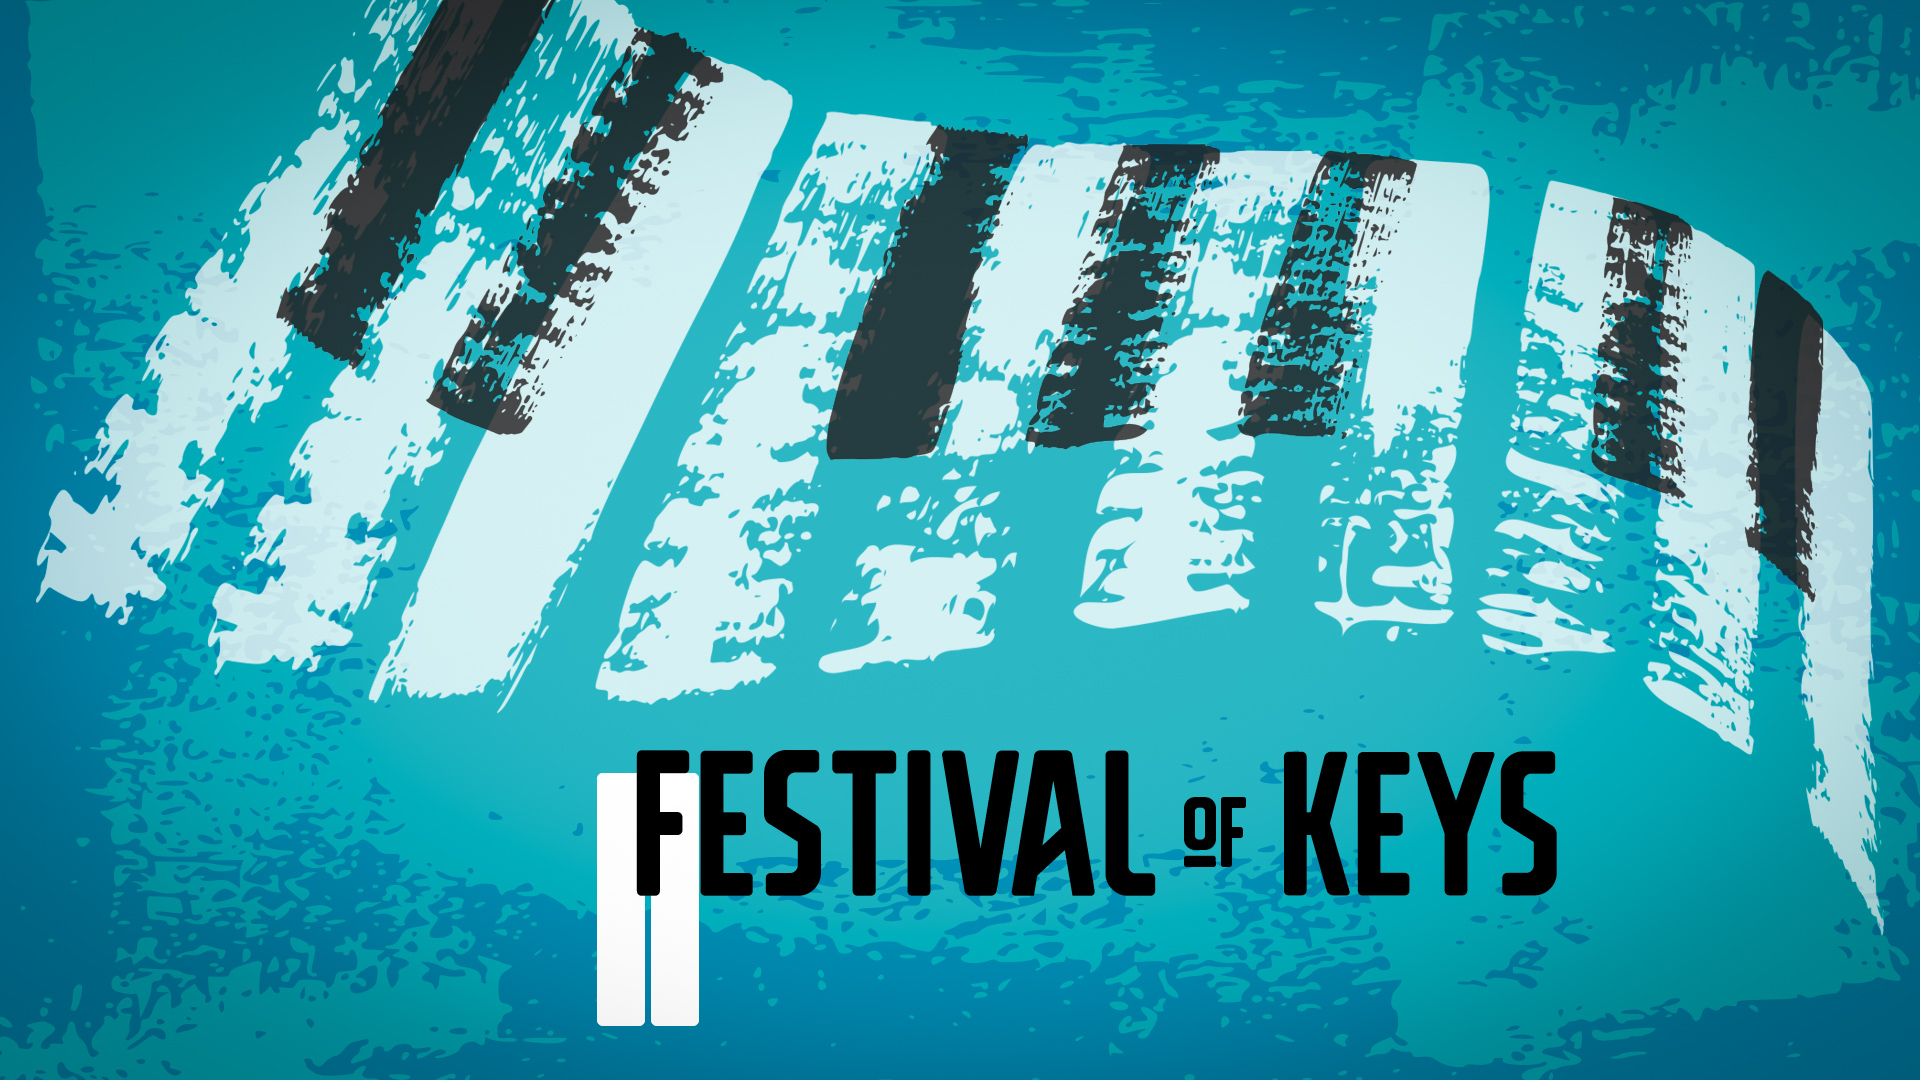 Festival of Keys Concert